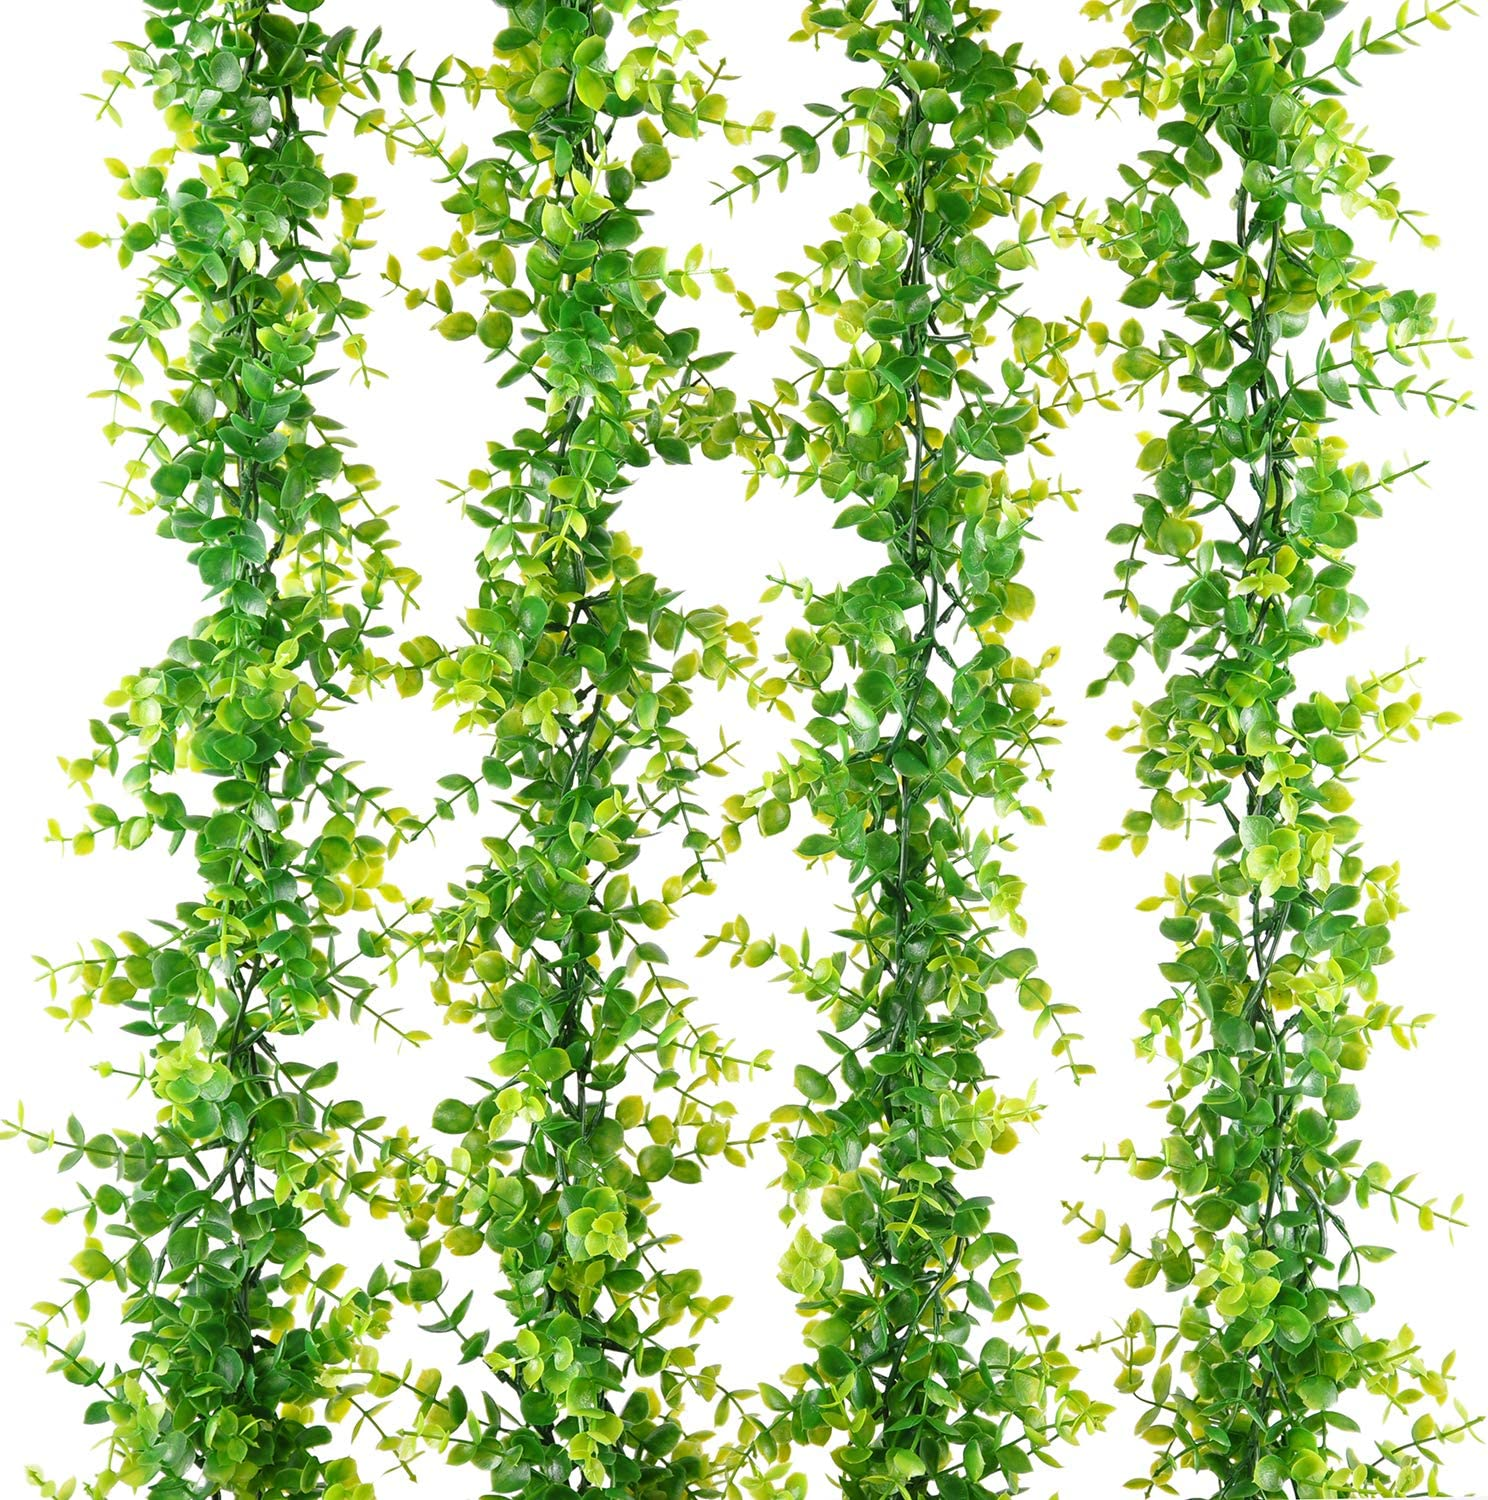 Naidiler 4 Pack Faux Eucalyptus Garland, Fake Eucalyptus Greenery Garland for Wedding Backdrop Arch Wall Décor, 6Ft/pcs Artificial Hanging Plants Vine for Farmhouse Table Party Wedding Decor